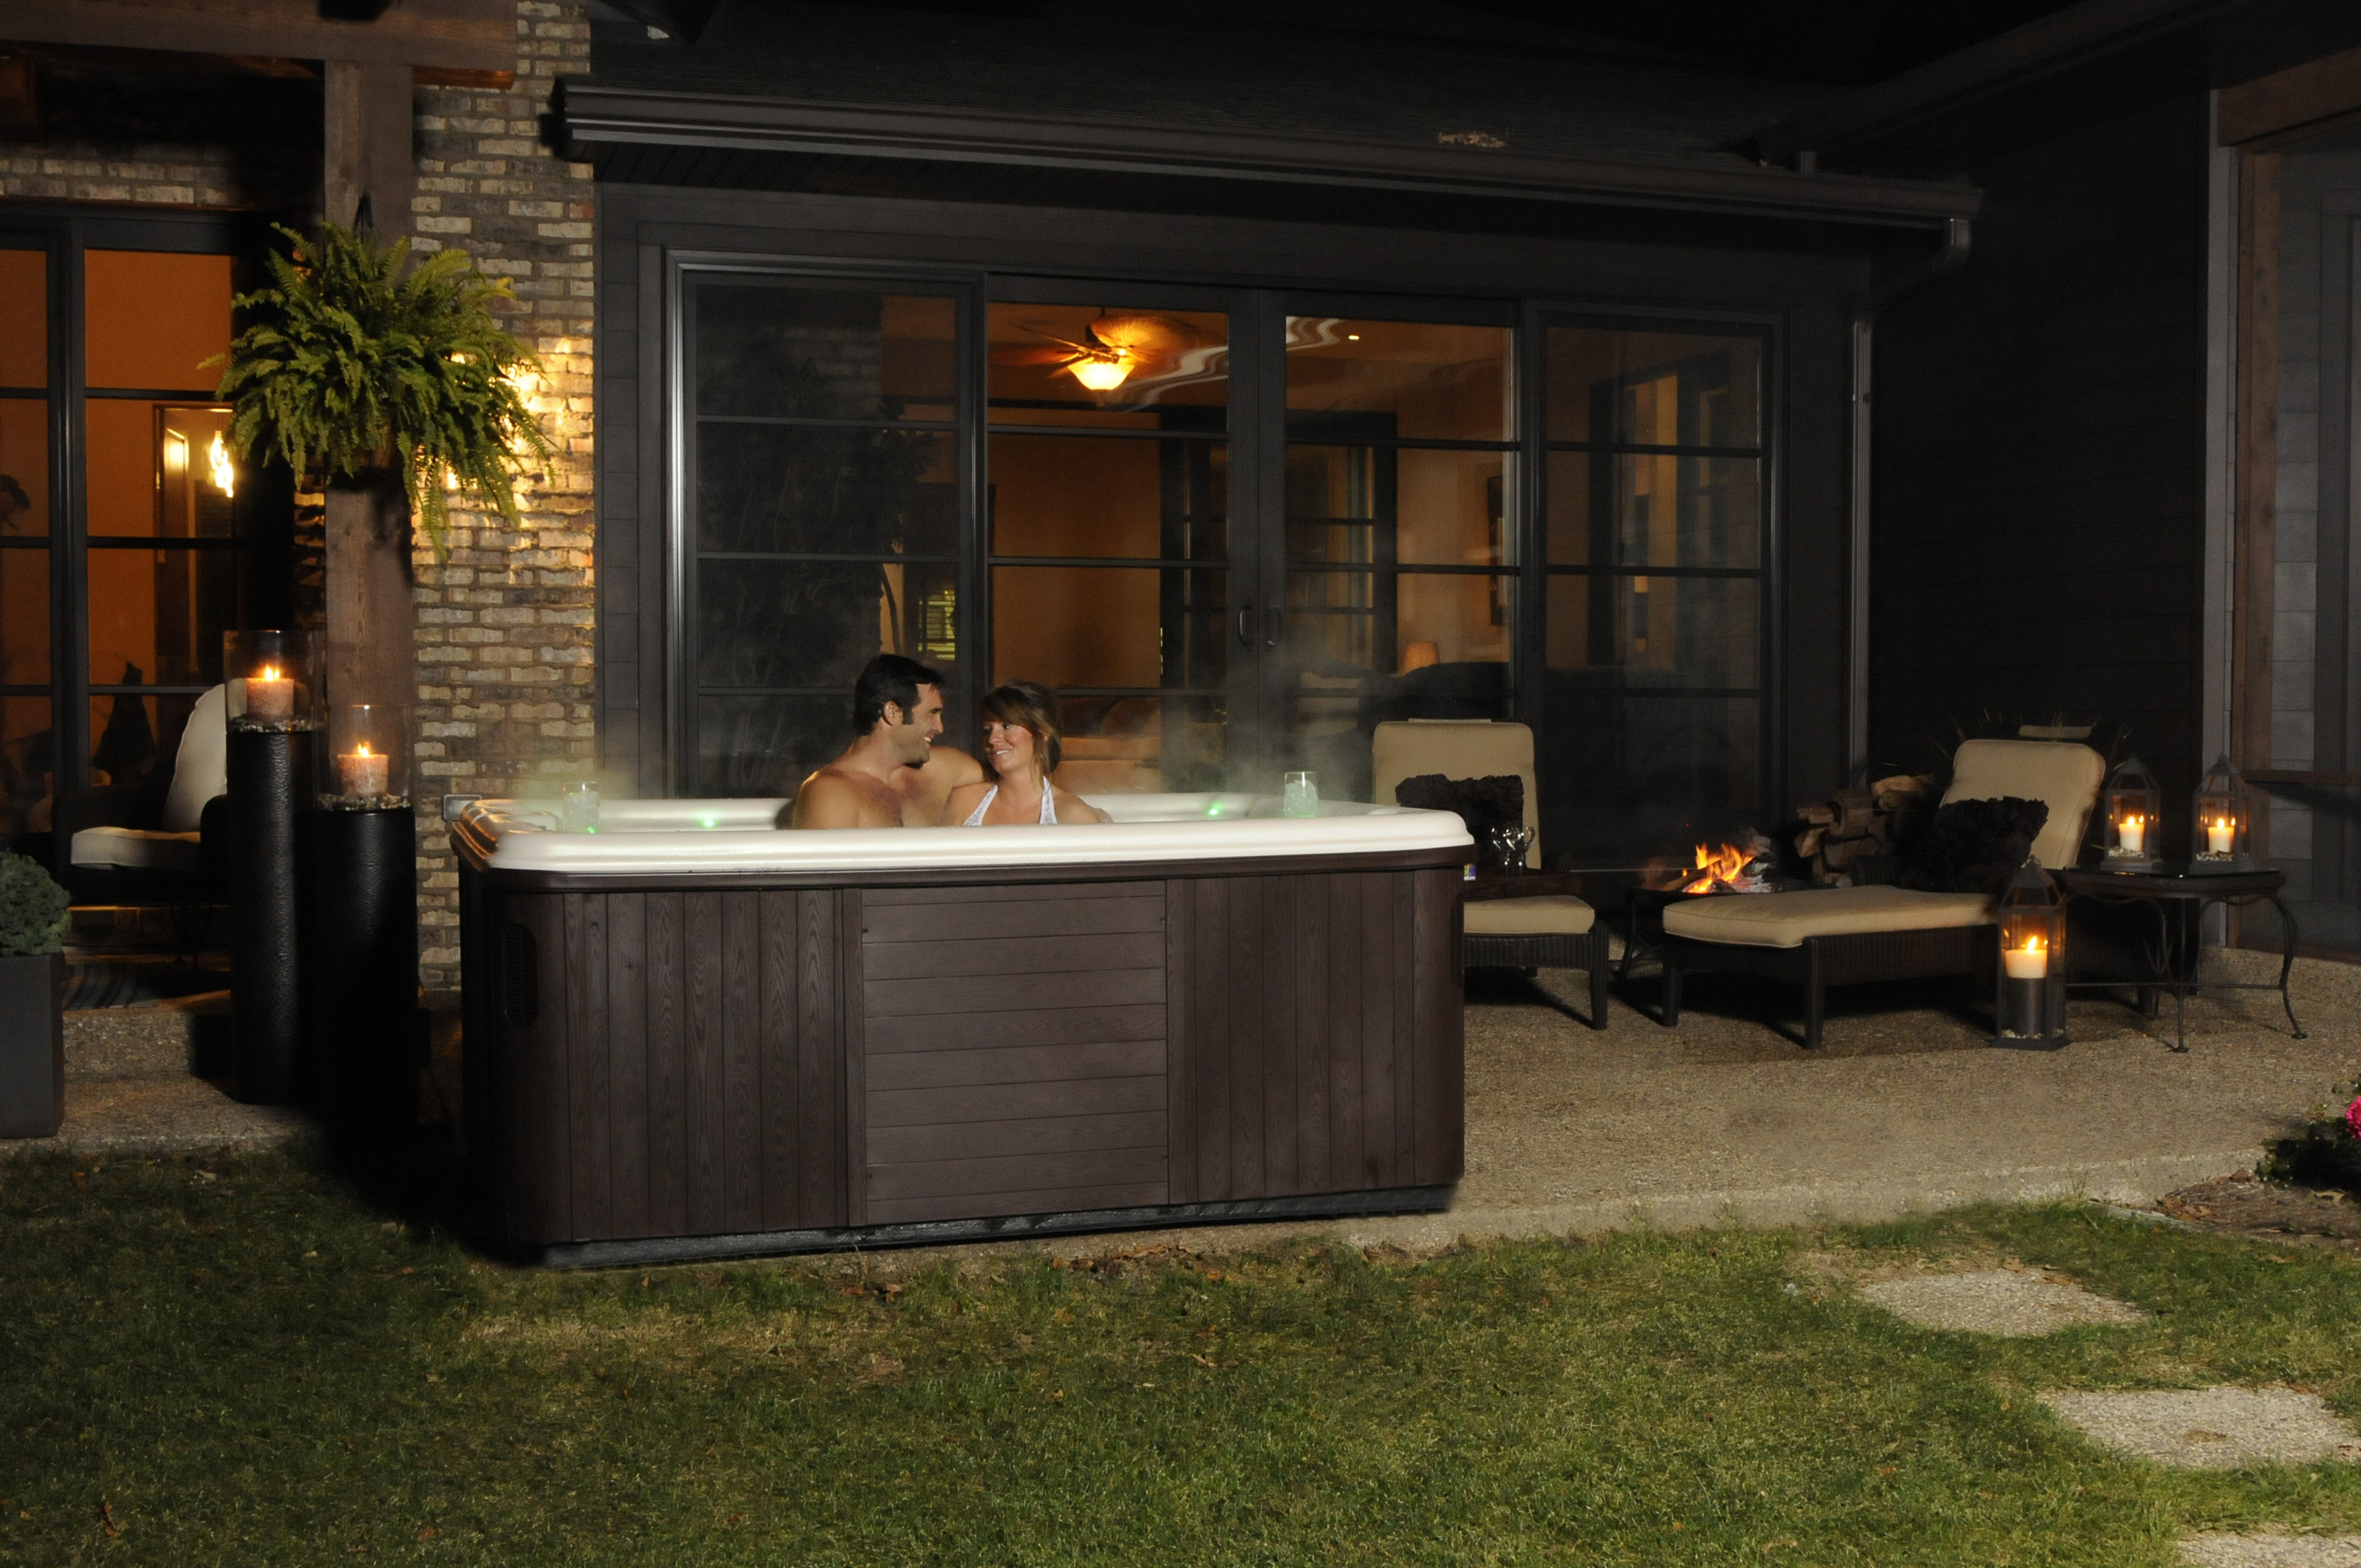 Viking spa #hottublife in Waterford MI